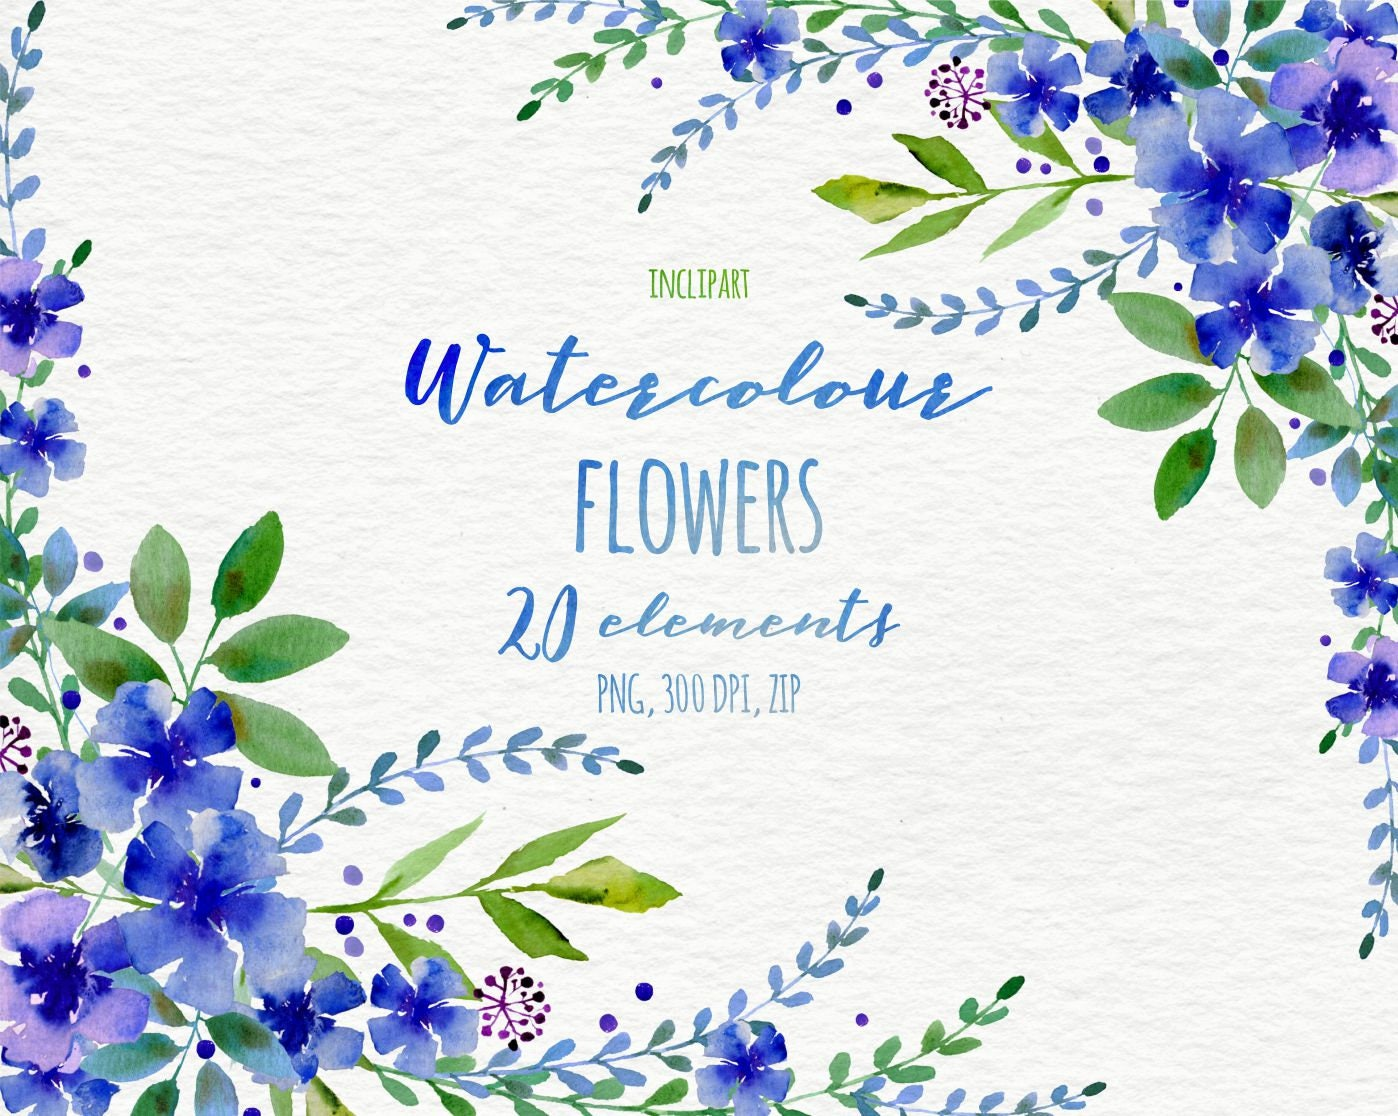 Watercolor flower clipart floral wreath corner garland zoom izmirmasajfo Gallery